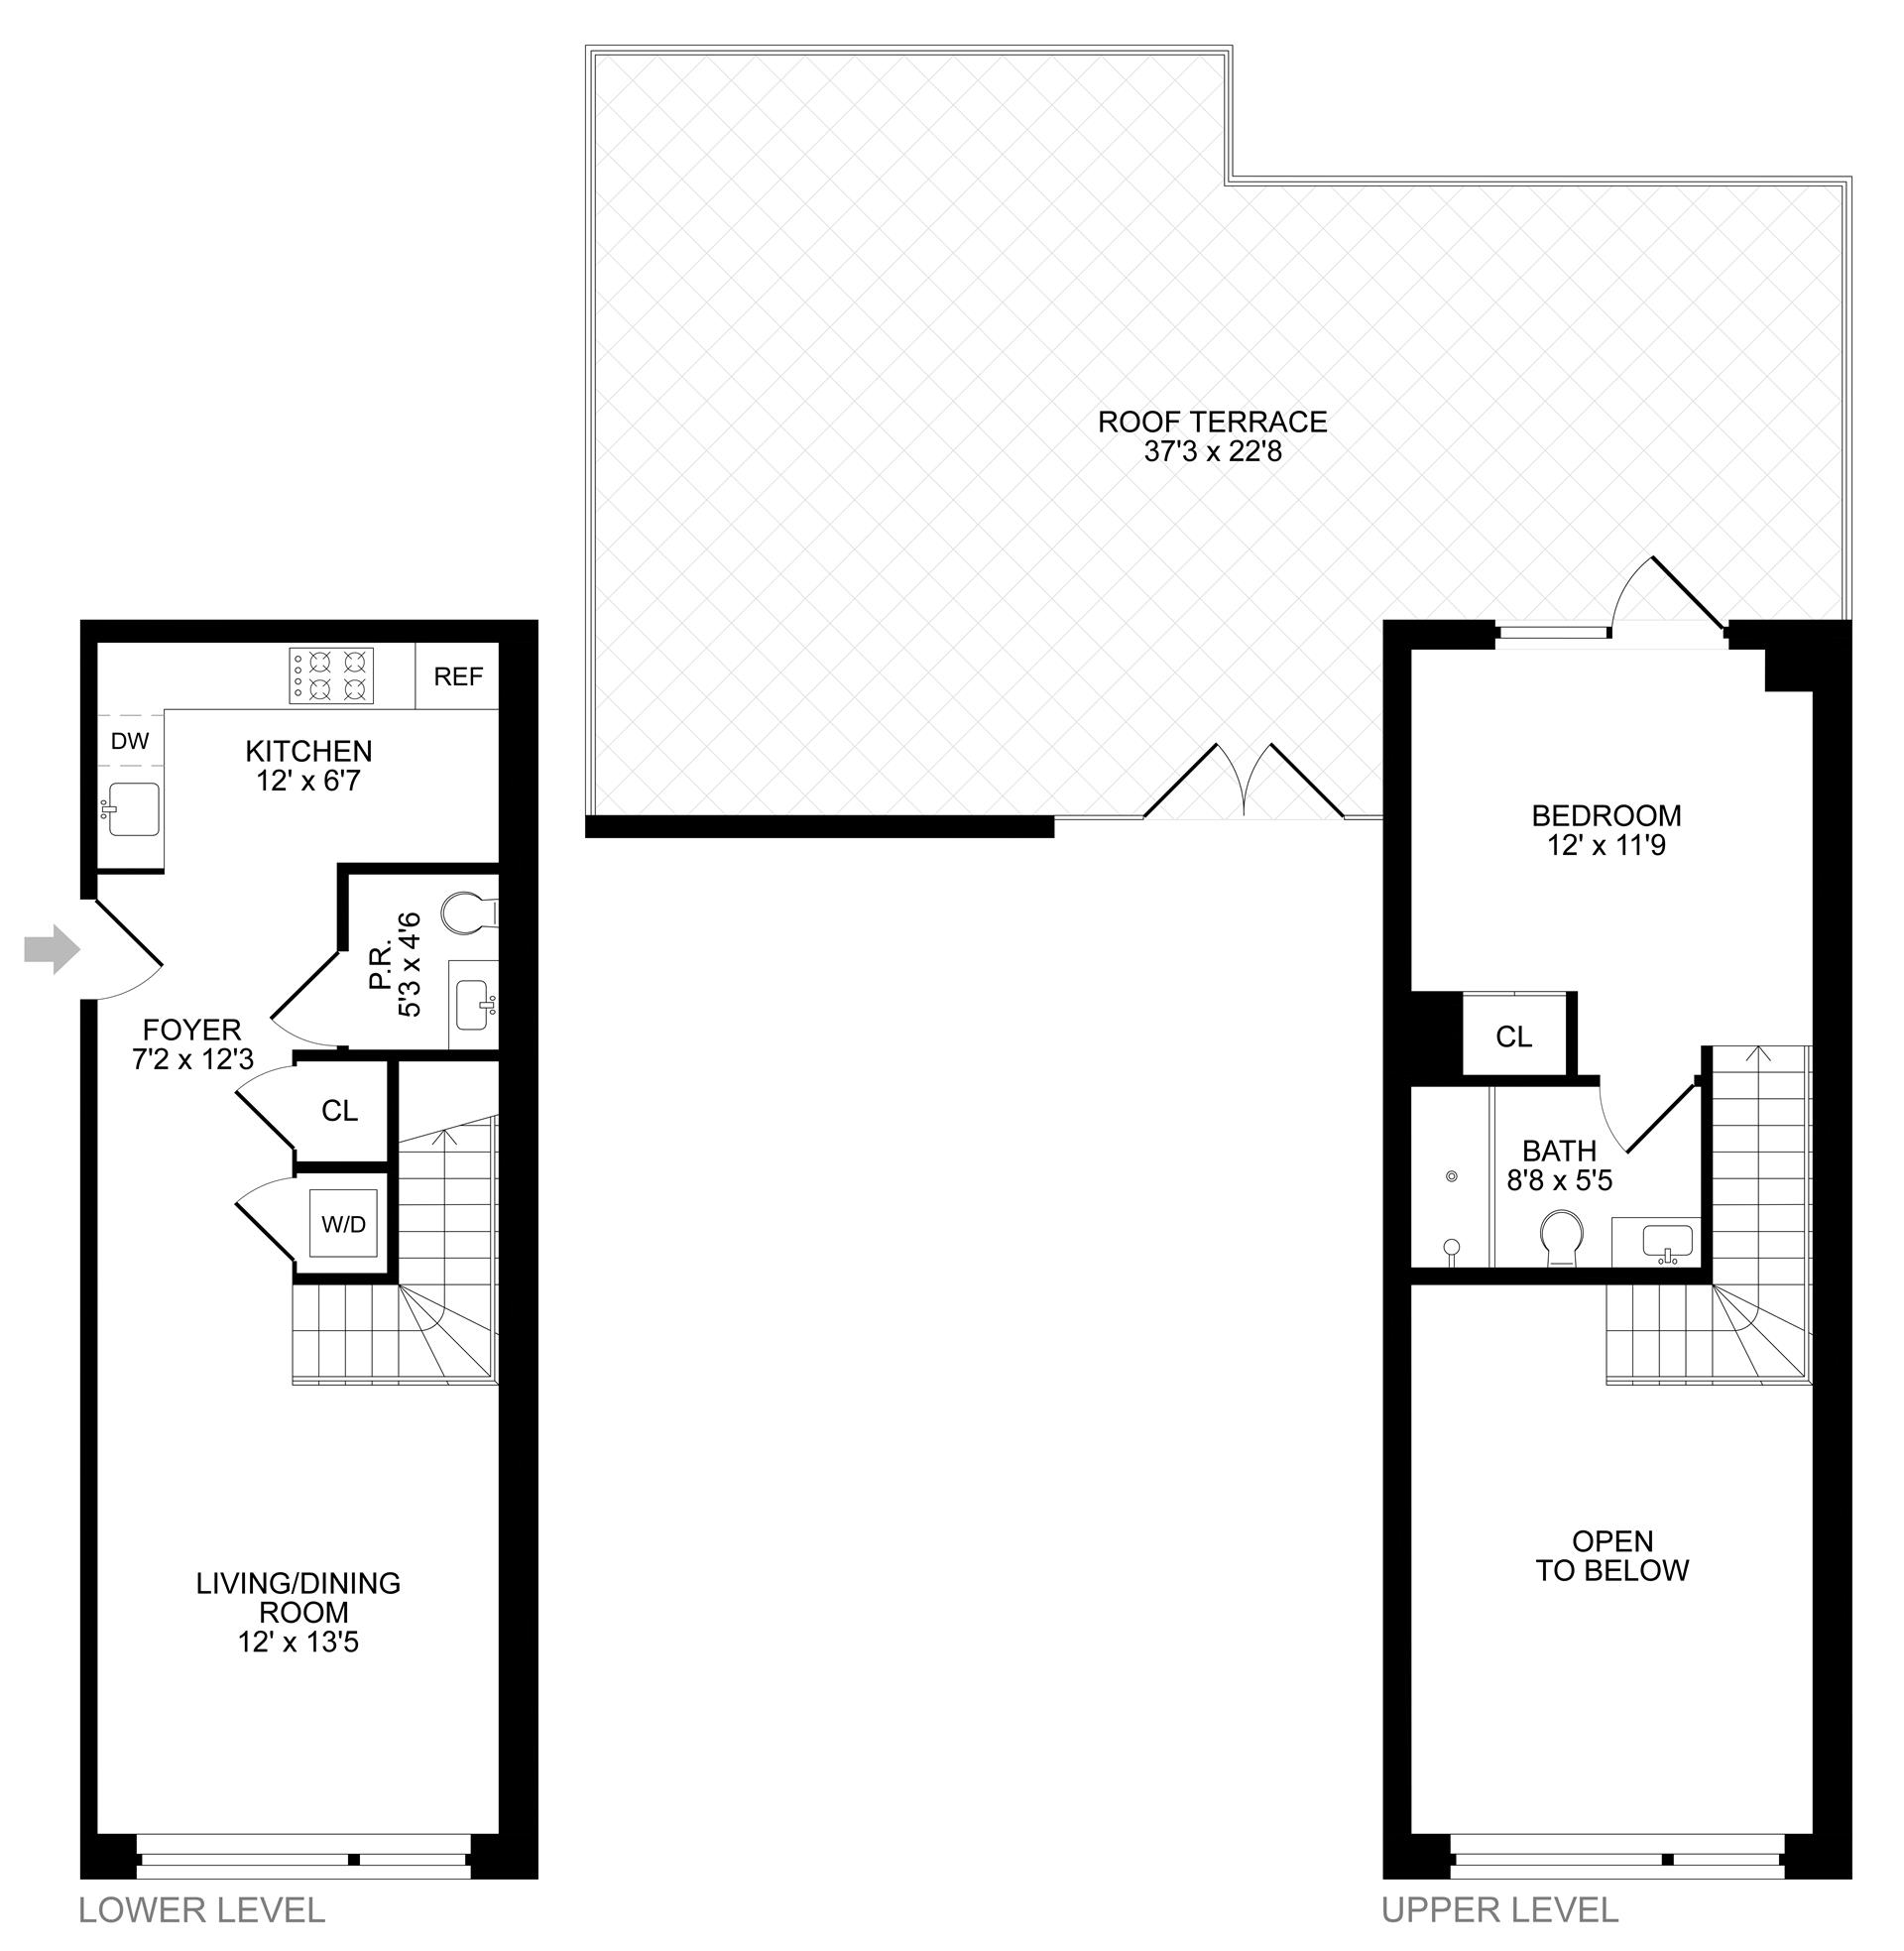 Floor plan of 299 Van Buren Street, 4C - Bedford - Stuyvesant, New York